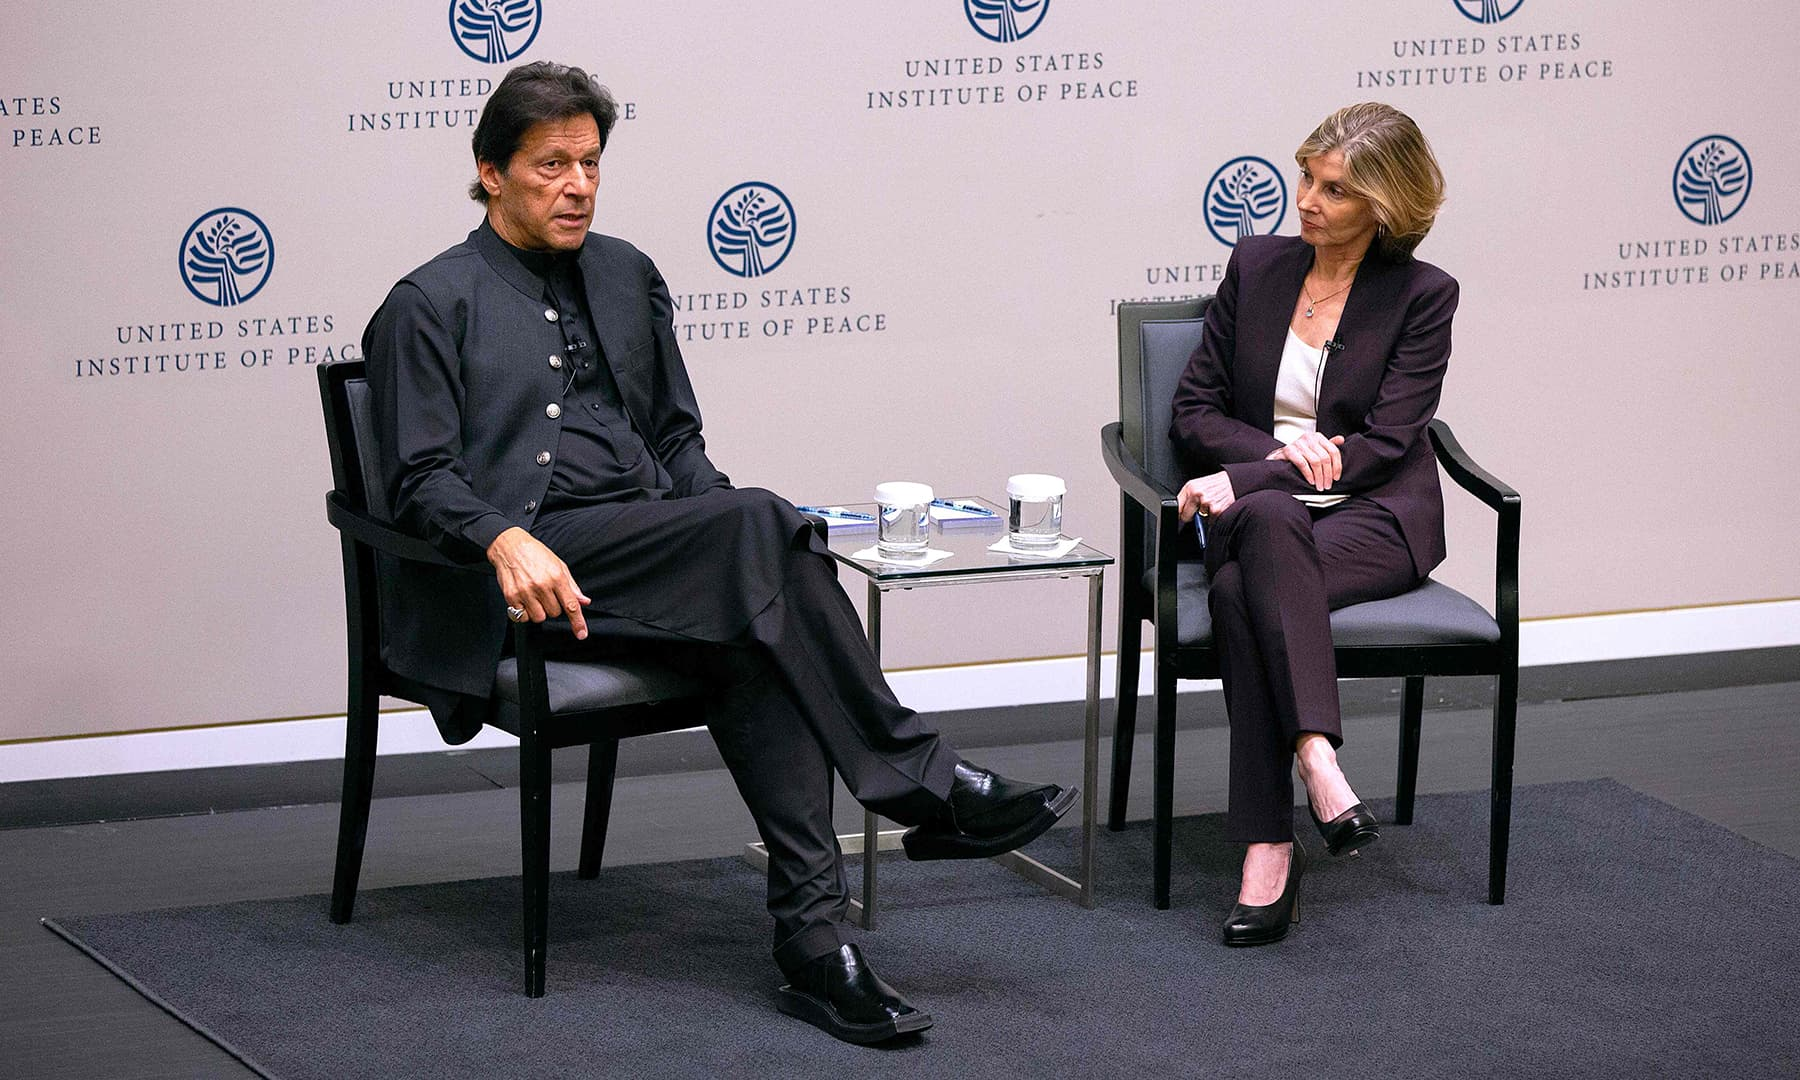 PM Khan and United States Institute of Peace President Nancy Lindborg take part in a discussion. — AFP